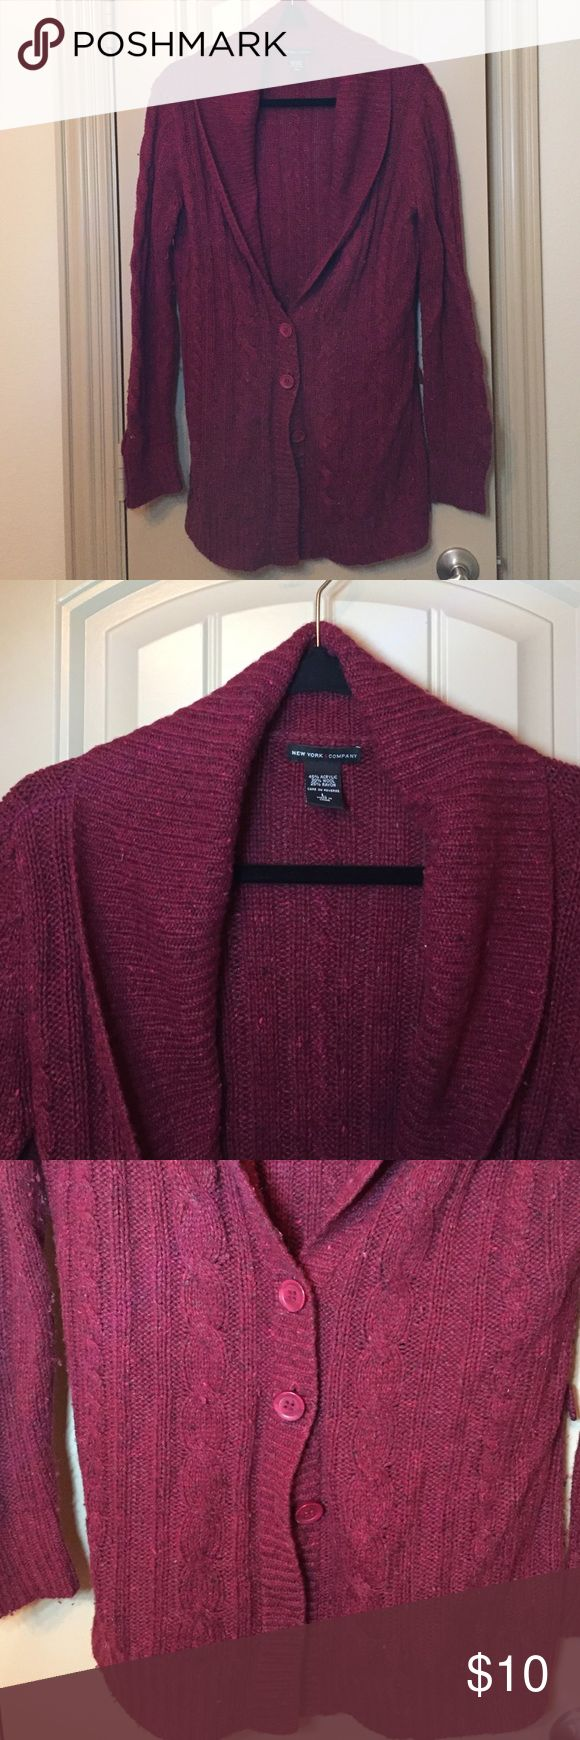 Ny&co burgundy cardigan Burgundy sweater cardigan with 4 buttons. Acrylic, wool and rayon. Size L. New York & Company Sweaters Cardigans